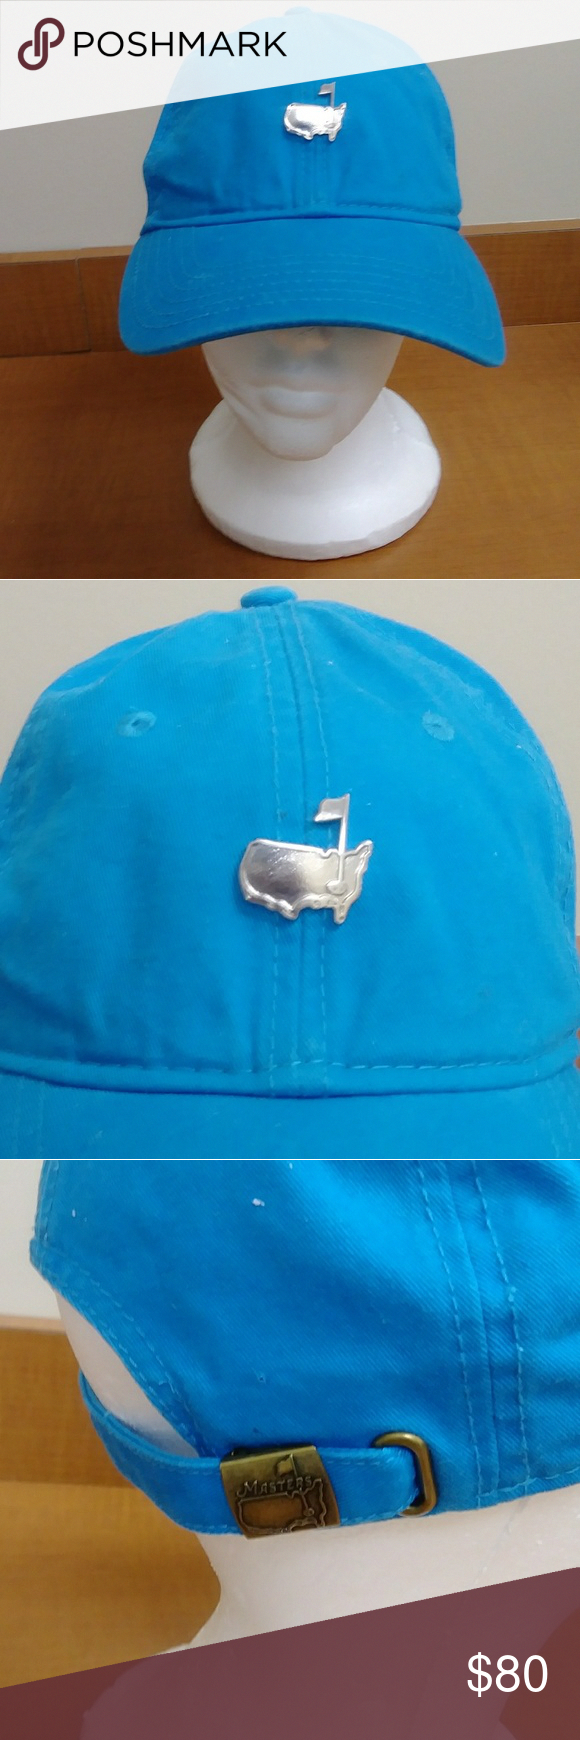 a07ecf9d954 Rare Masters American Needle Golf Tournament Hat Rare American Needle  Masters Golf tournament hat Blue in